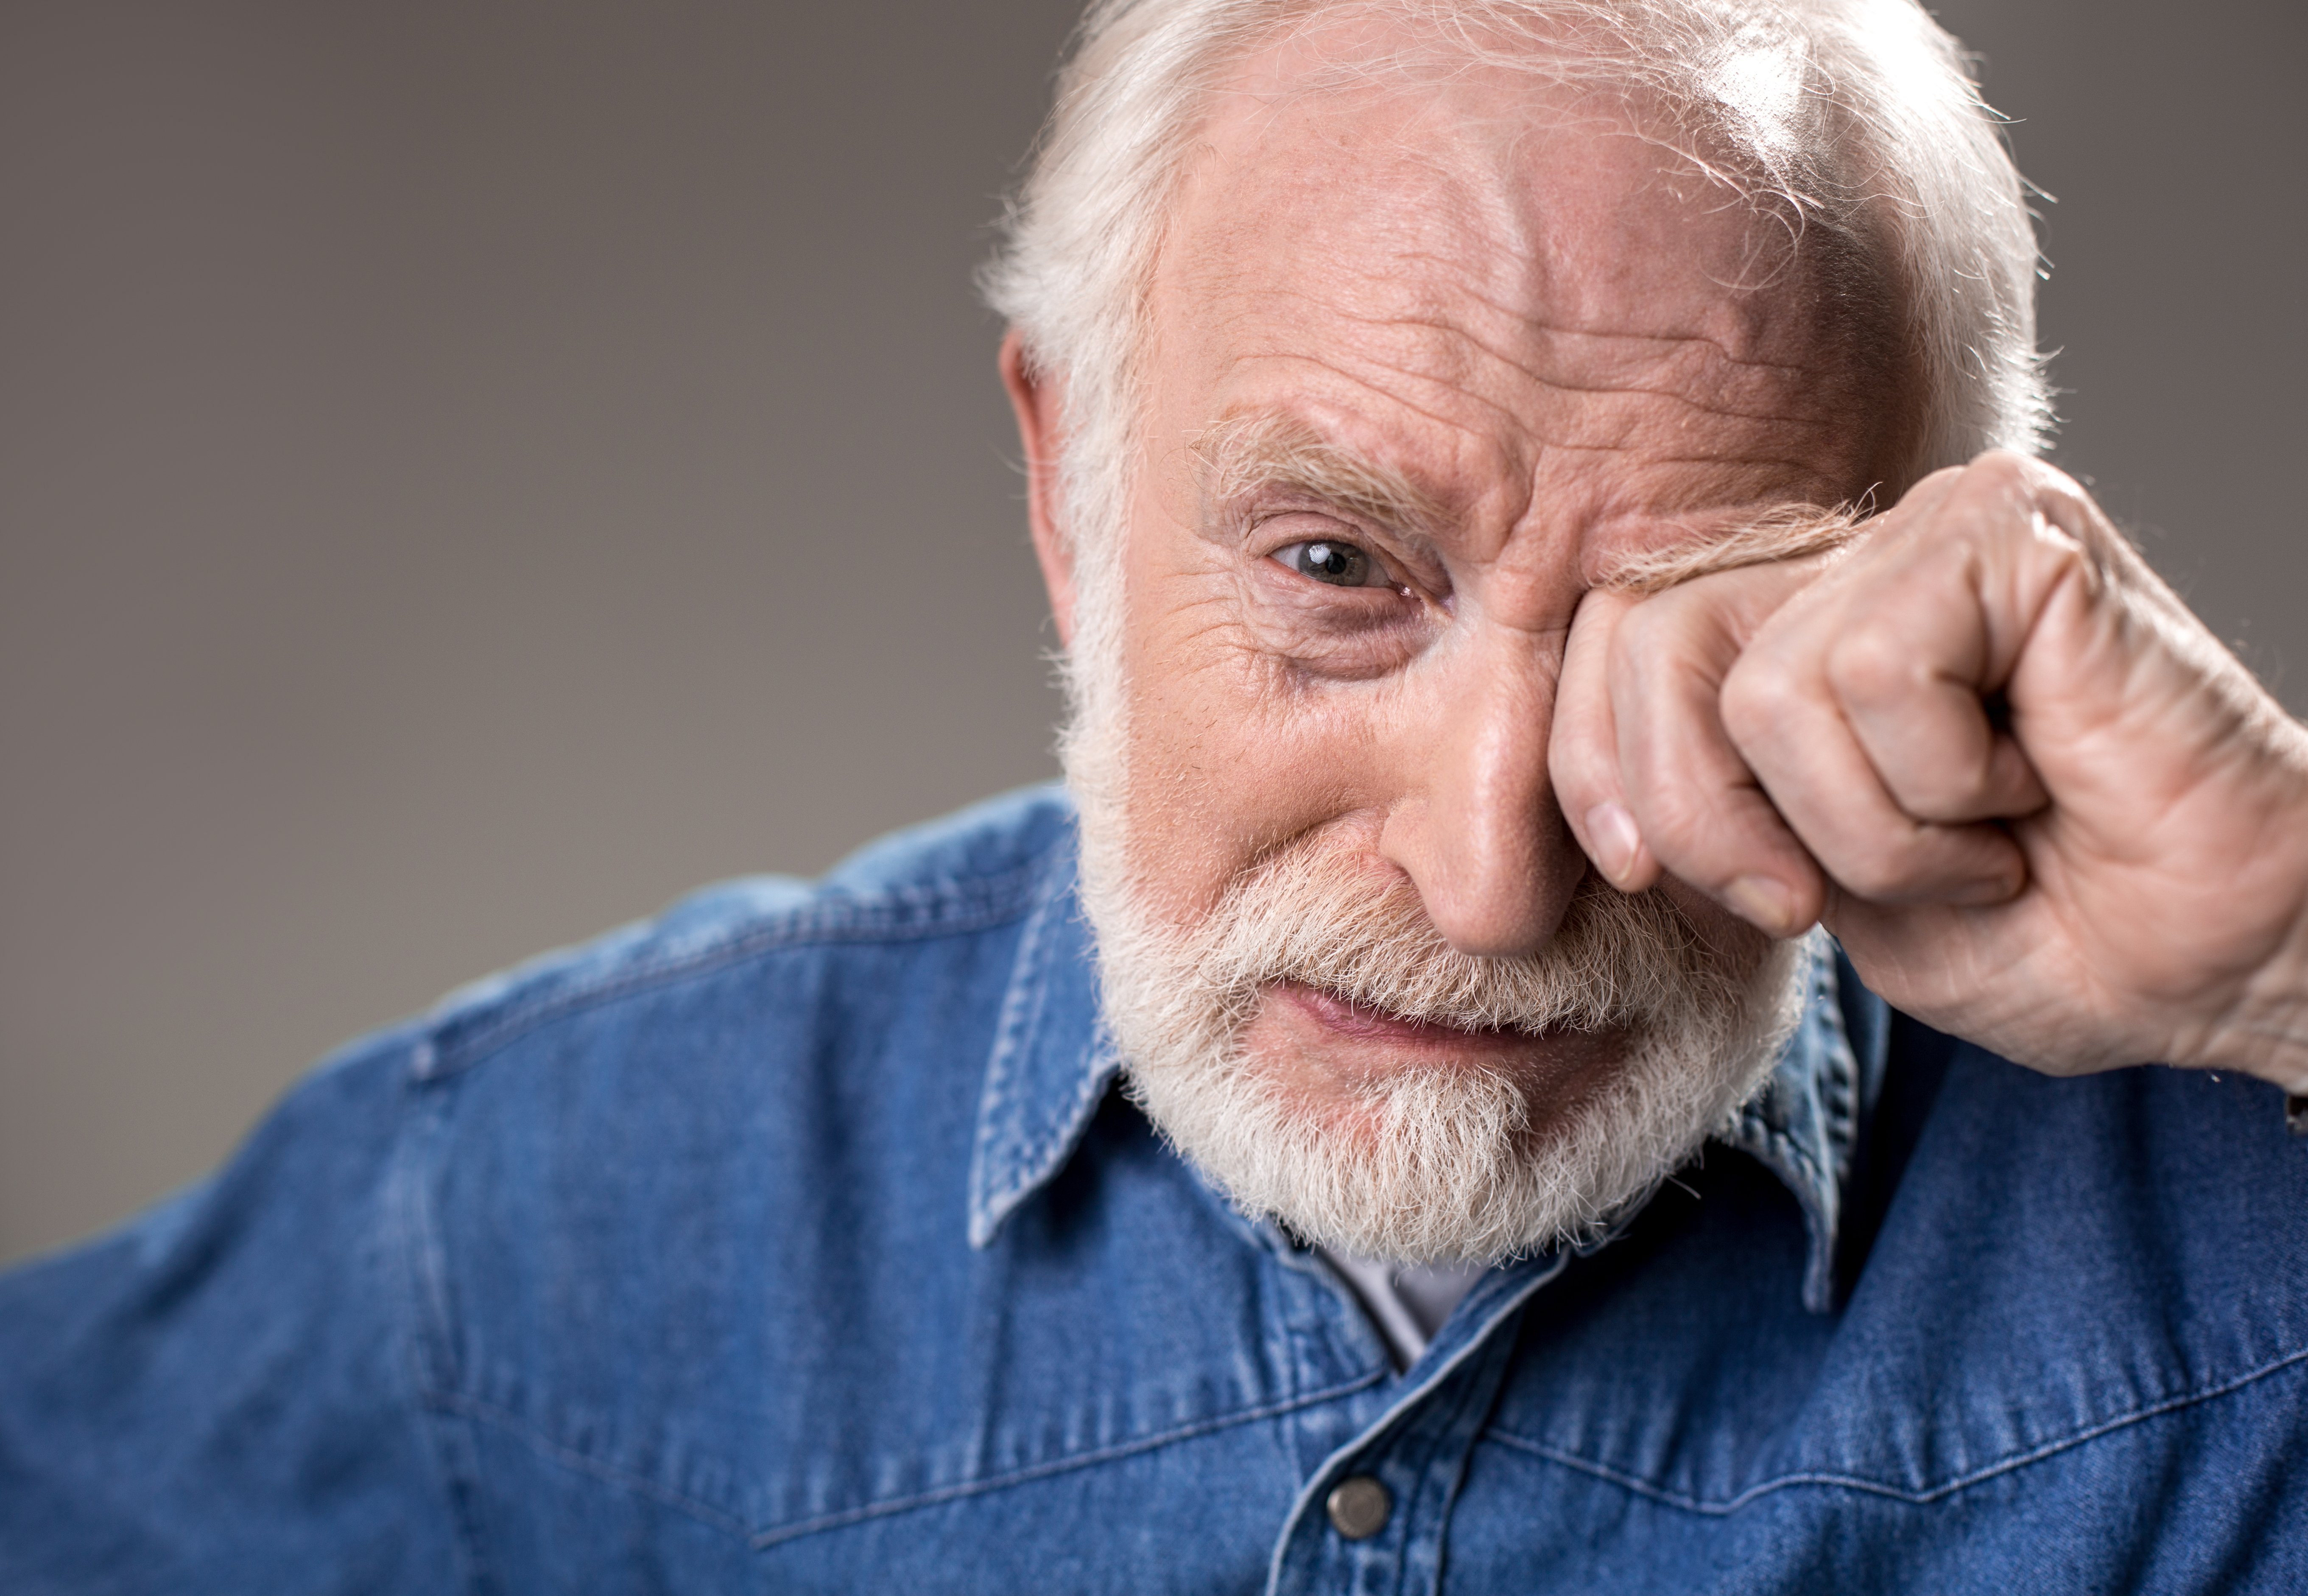 Elderly man rubbing his eye | Photo: Shutterstock